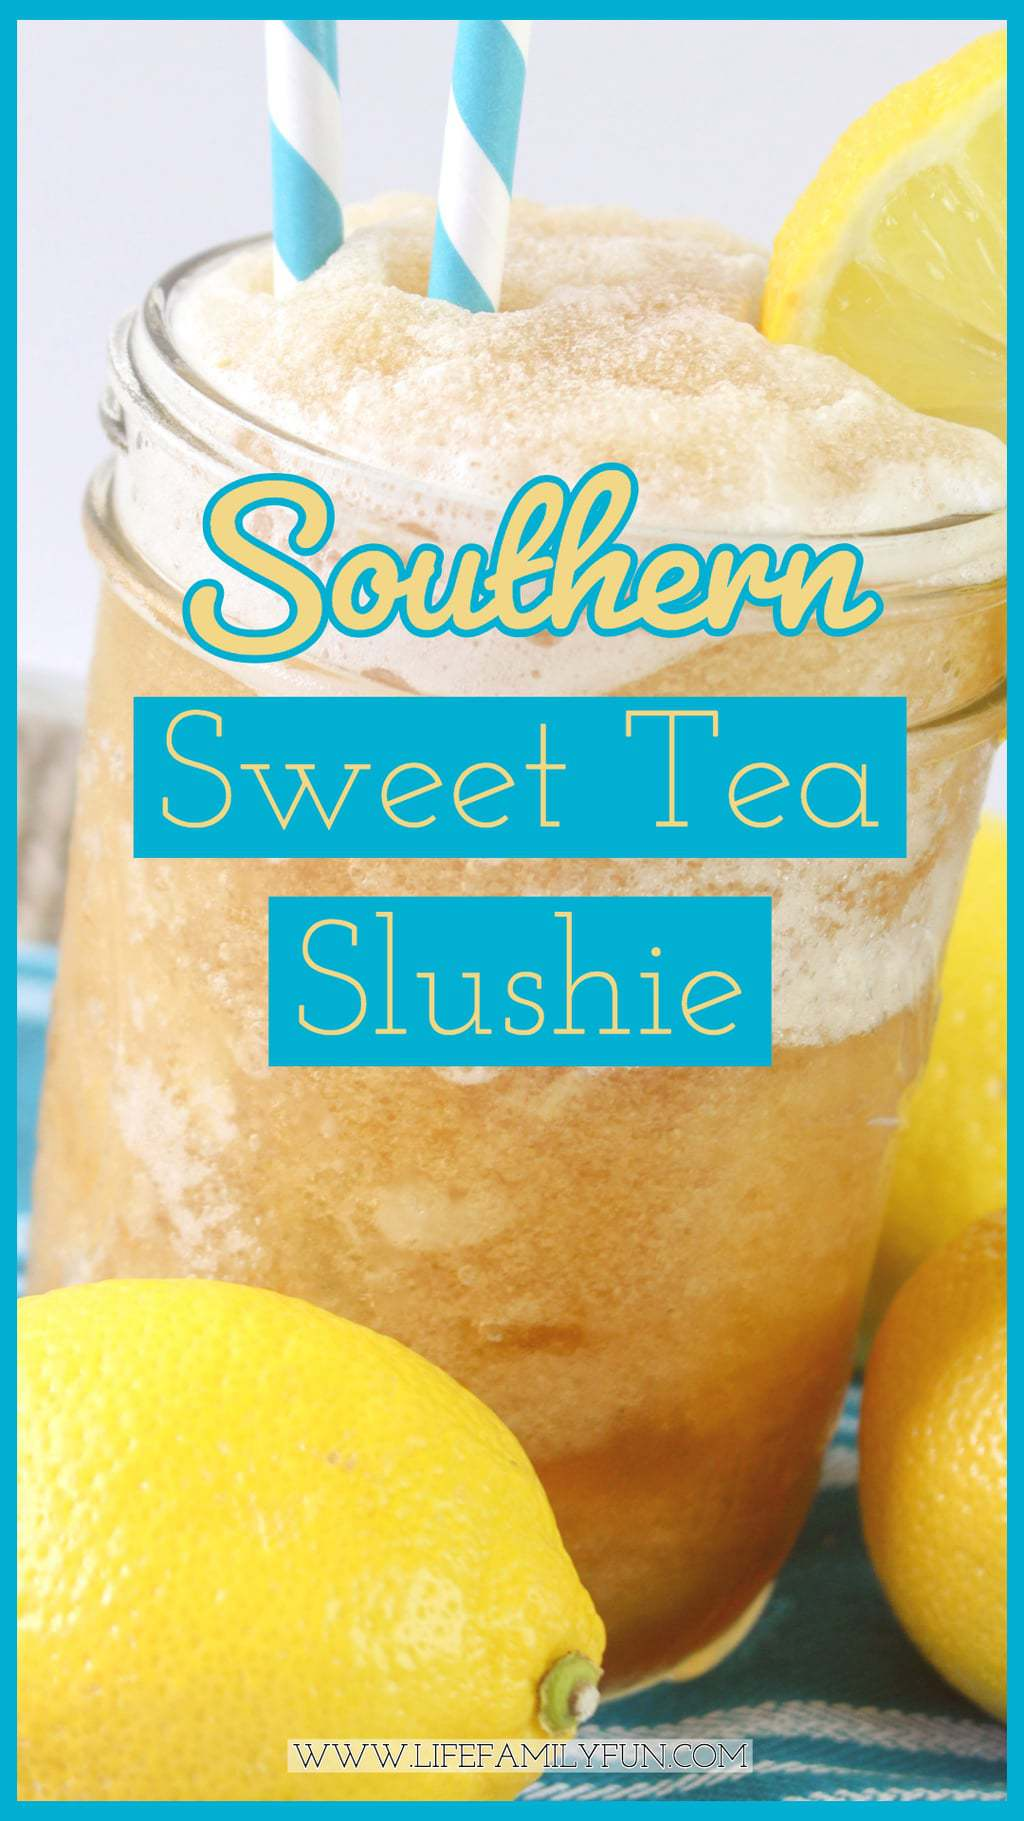 Enjoying a delicious Southern Sweet Tea Slushy is the perfect way to cool your taste buds, while still getting that southern flavor that you love.